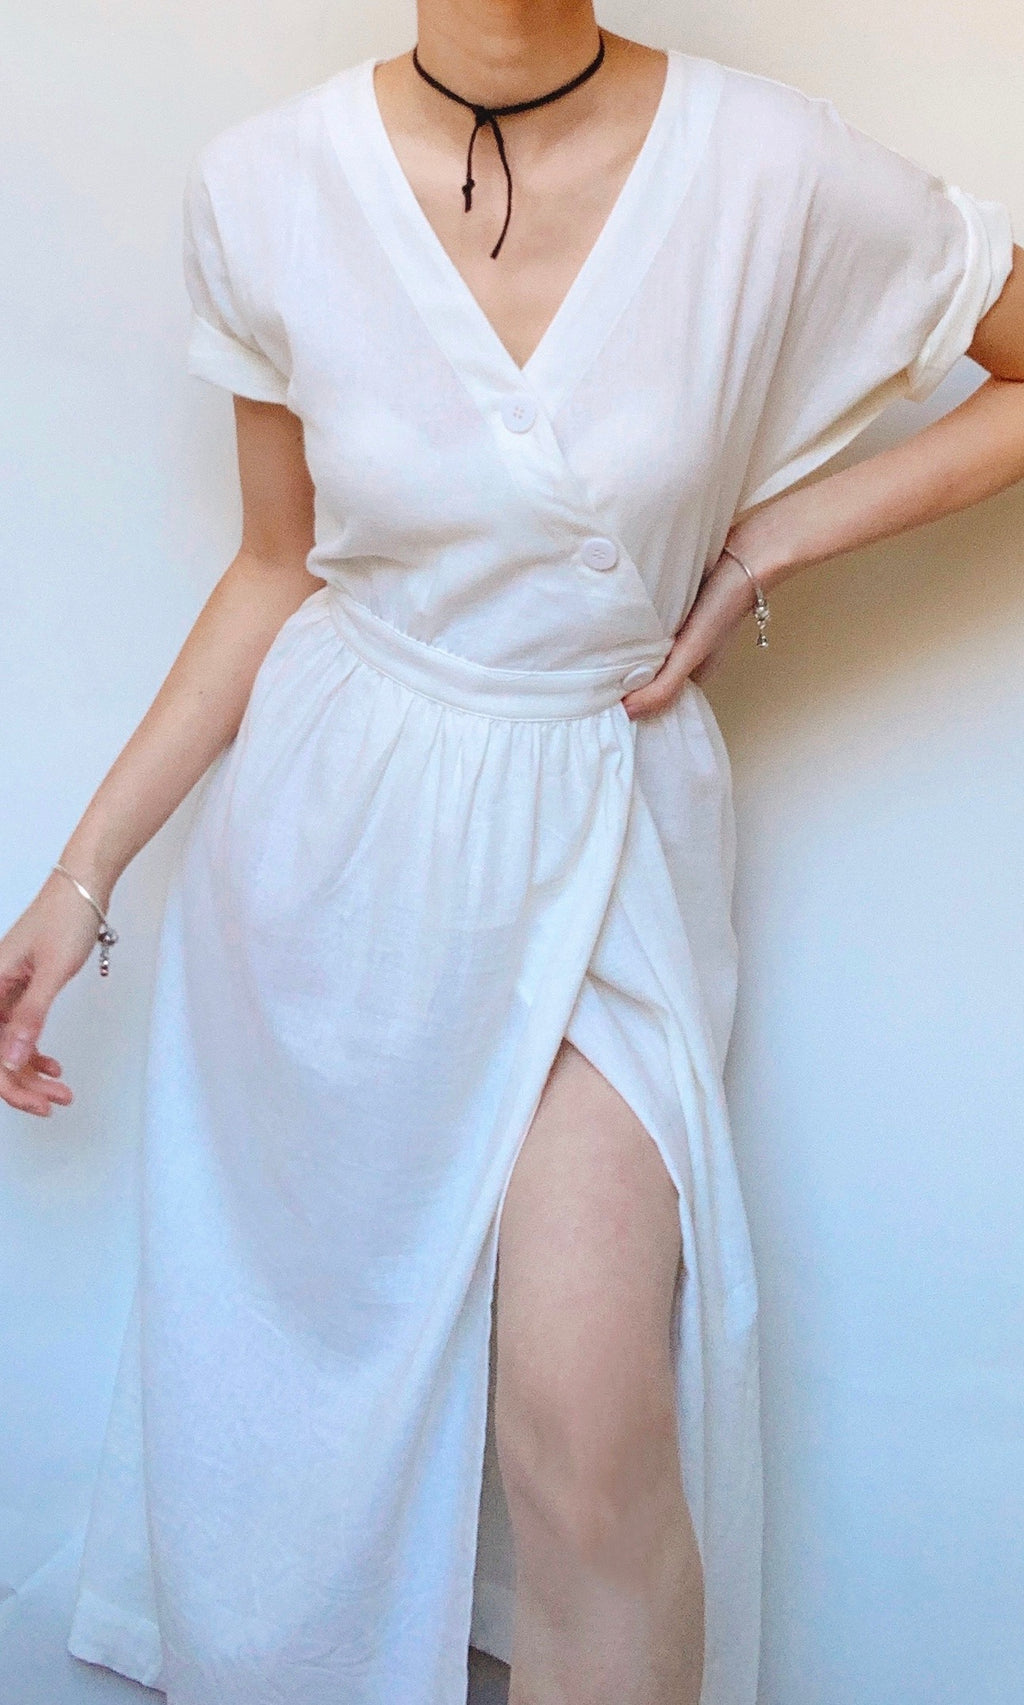 MORNING DEW LINEN MIDI DRESS WITH SIDE POCKETS IN WHITE - DRESS - Koogal.com.au